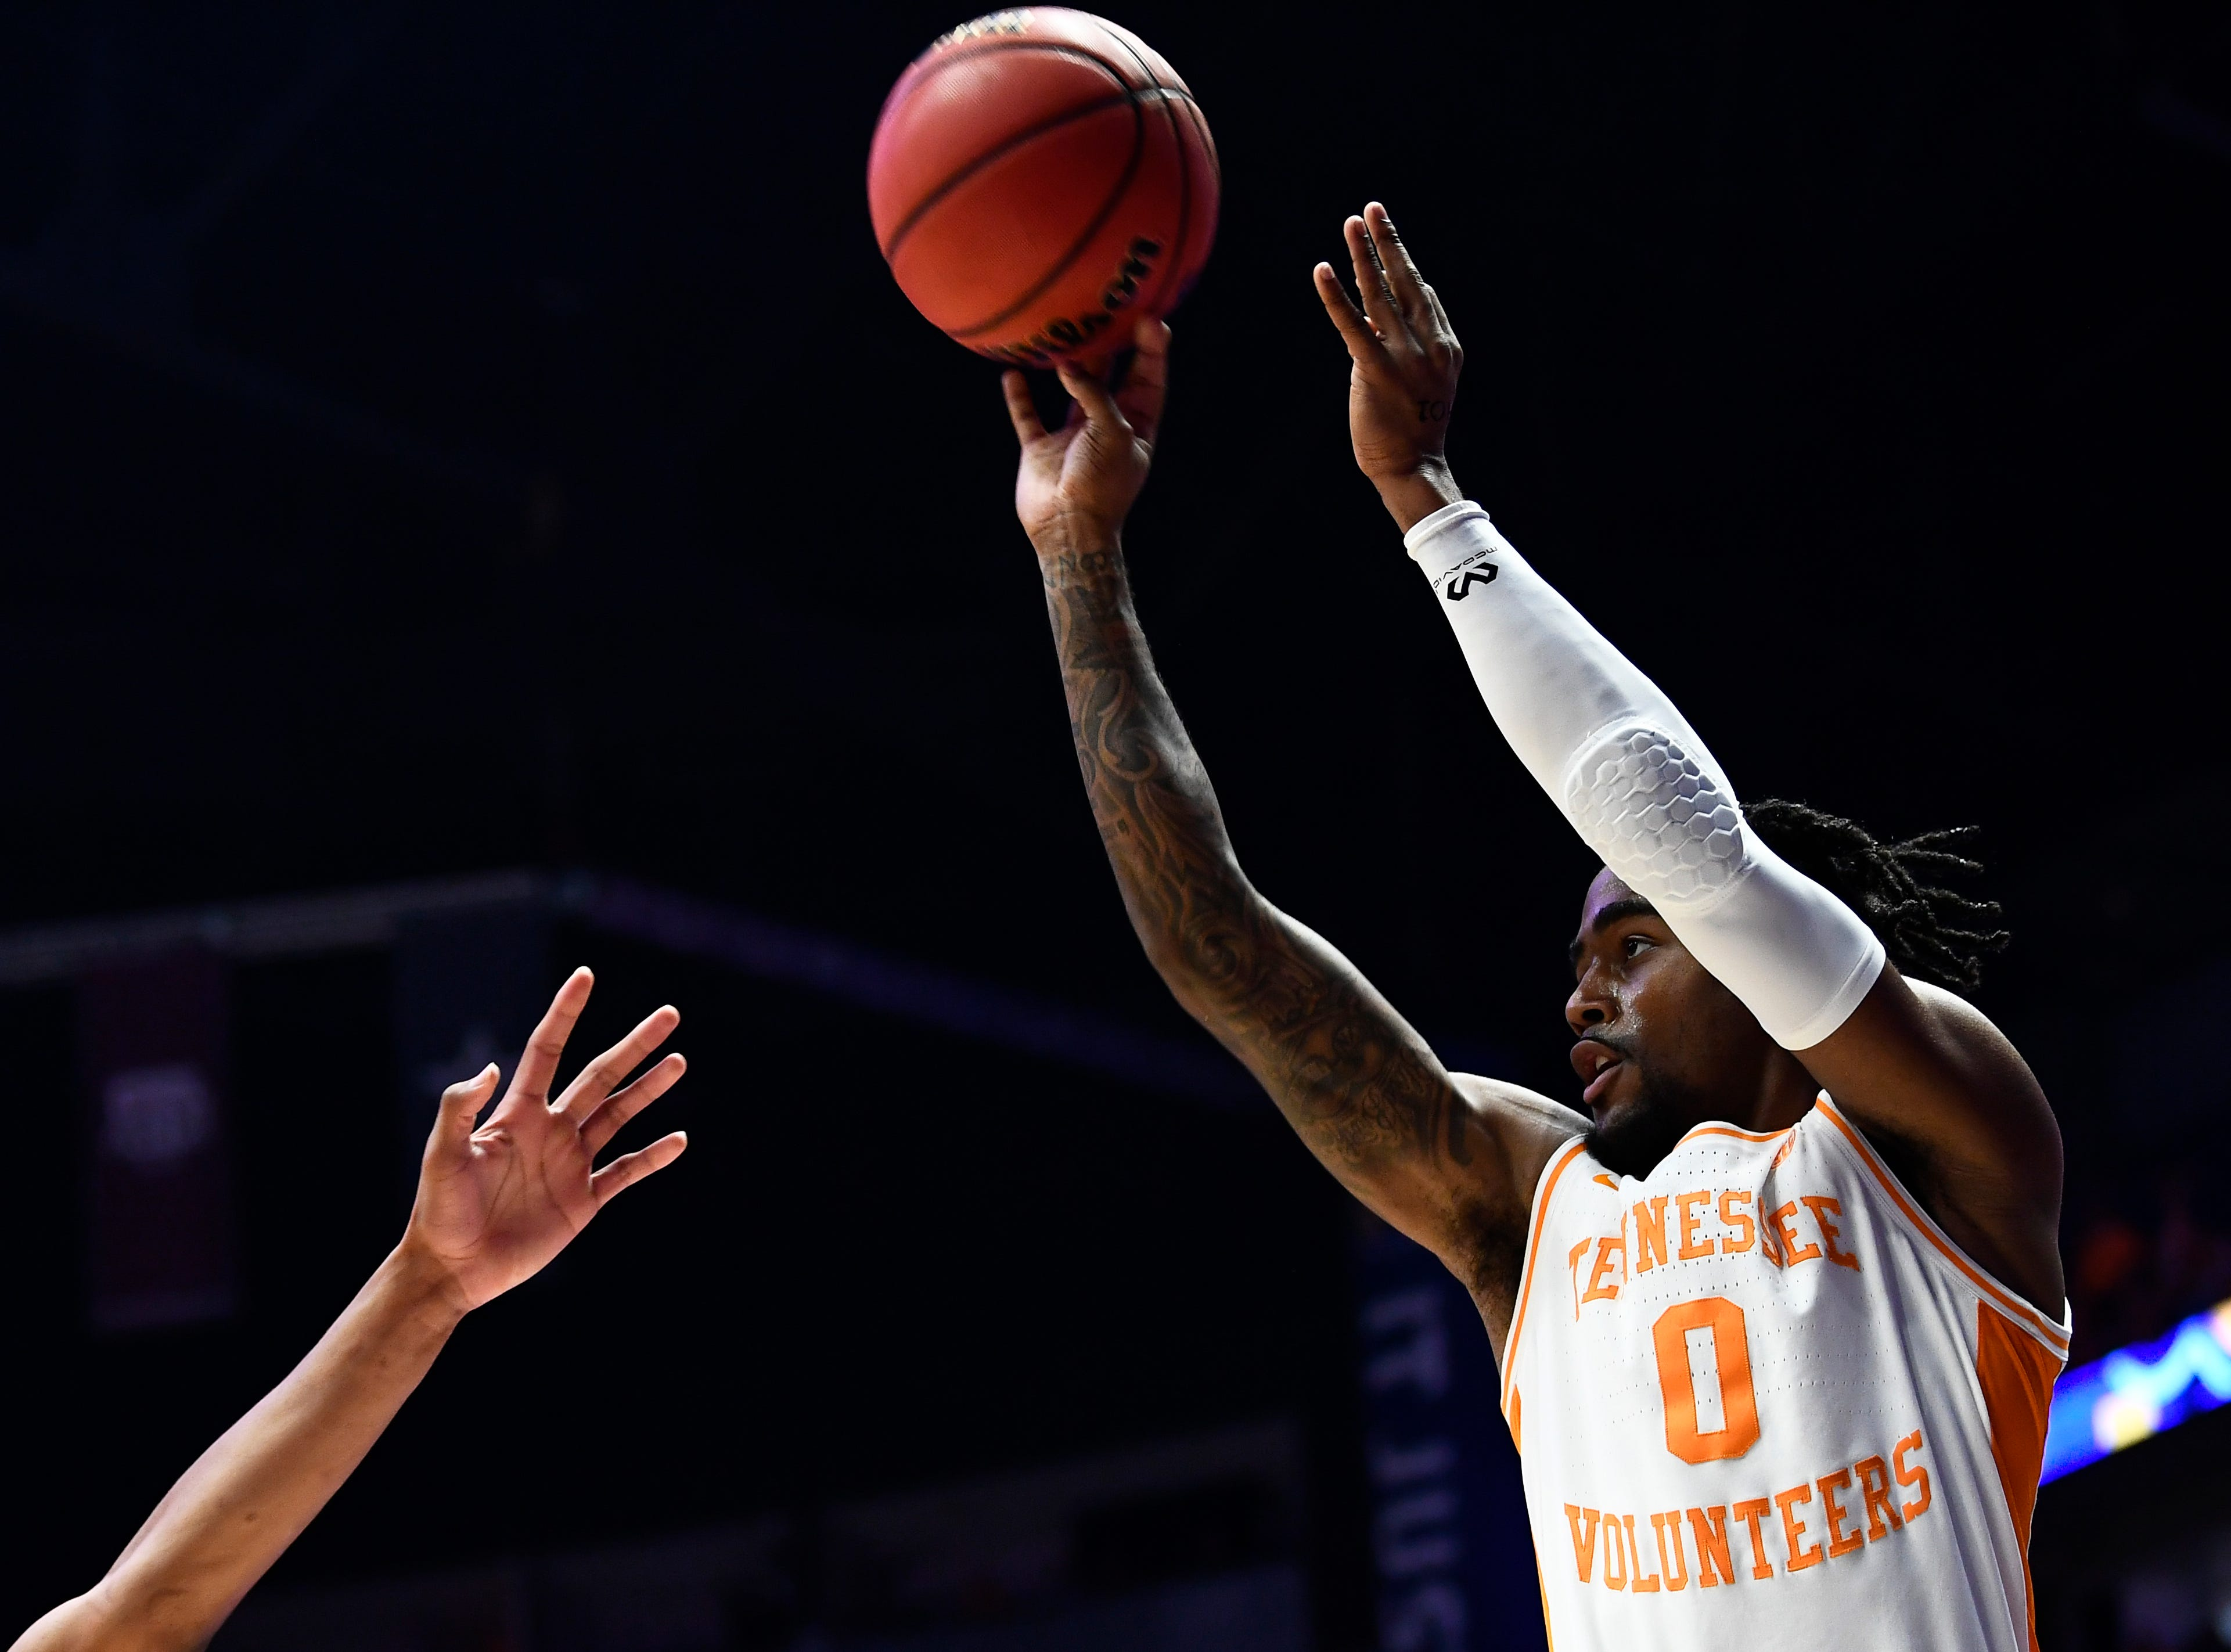 Tennessee guard Jordan Bone (0) takes a shot during the first half of the SEC Men's Basketball Tournament championship game at Bridgestone Arena in Nashville, Tenn., Sunday, March 17, 2019.